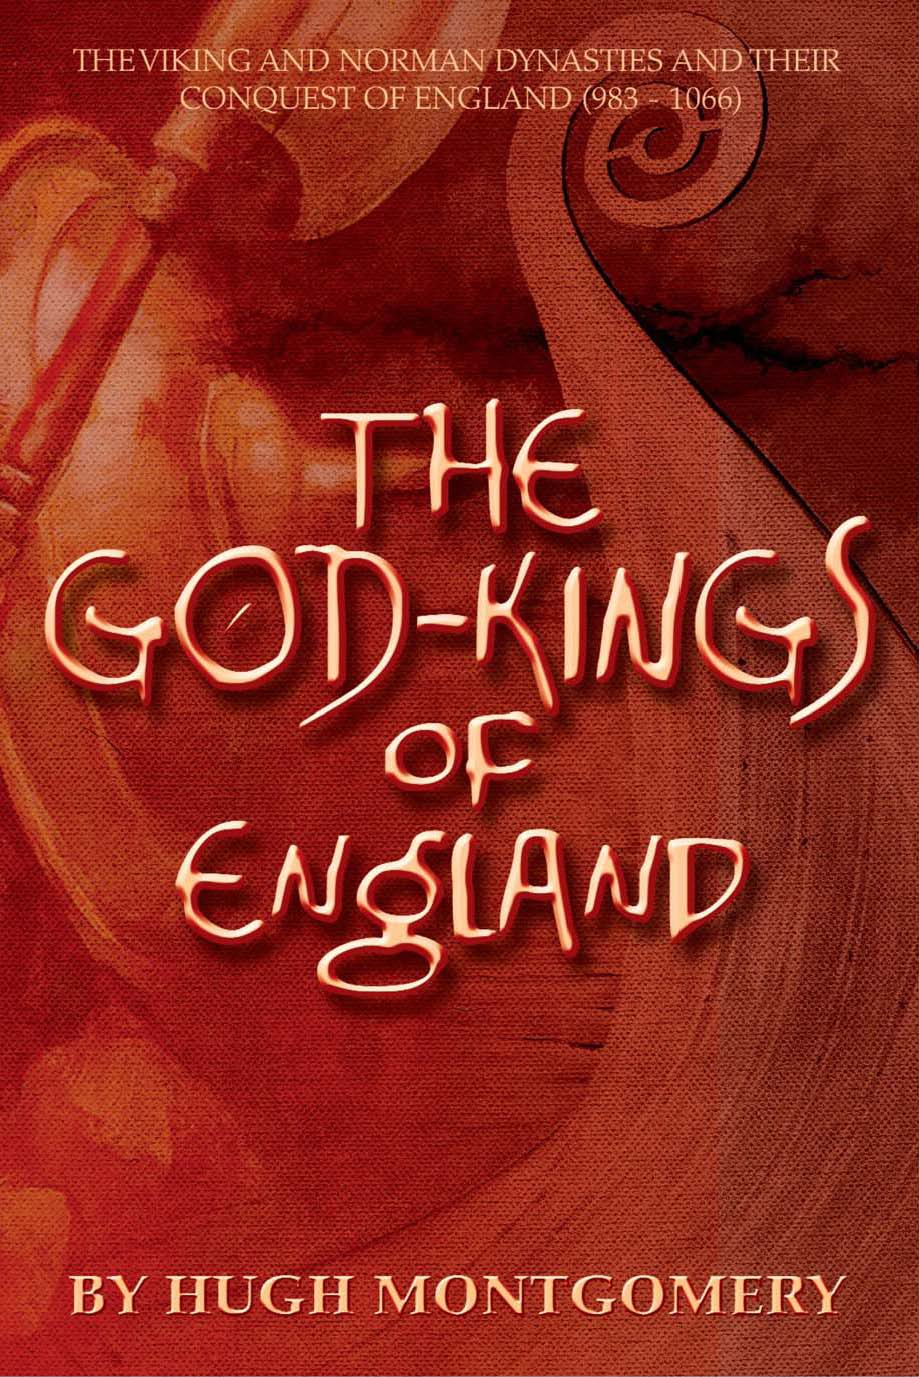 The God-Kings of England: The Viking and Norman Dynasties and Their Conquest of England (983 -1066)